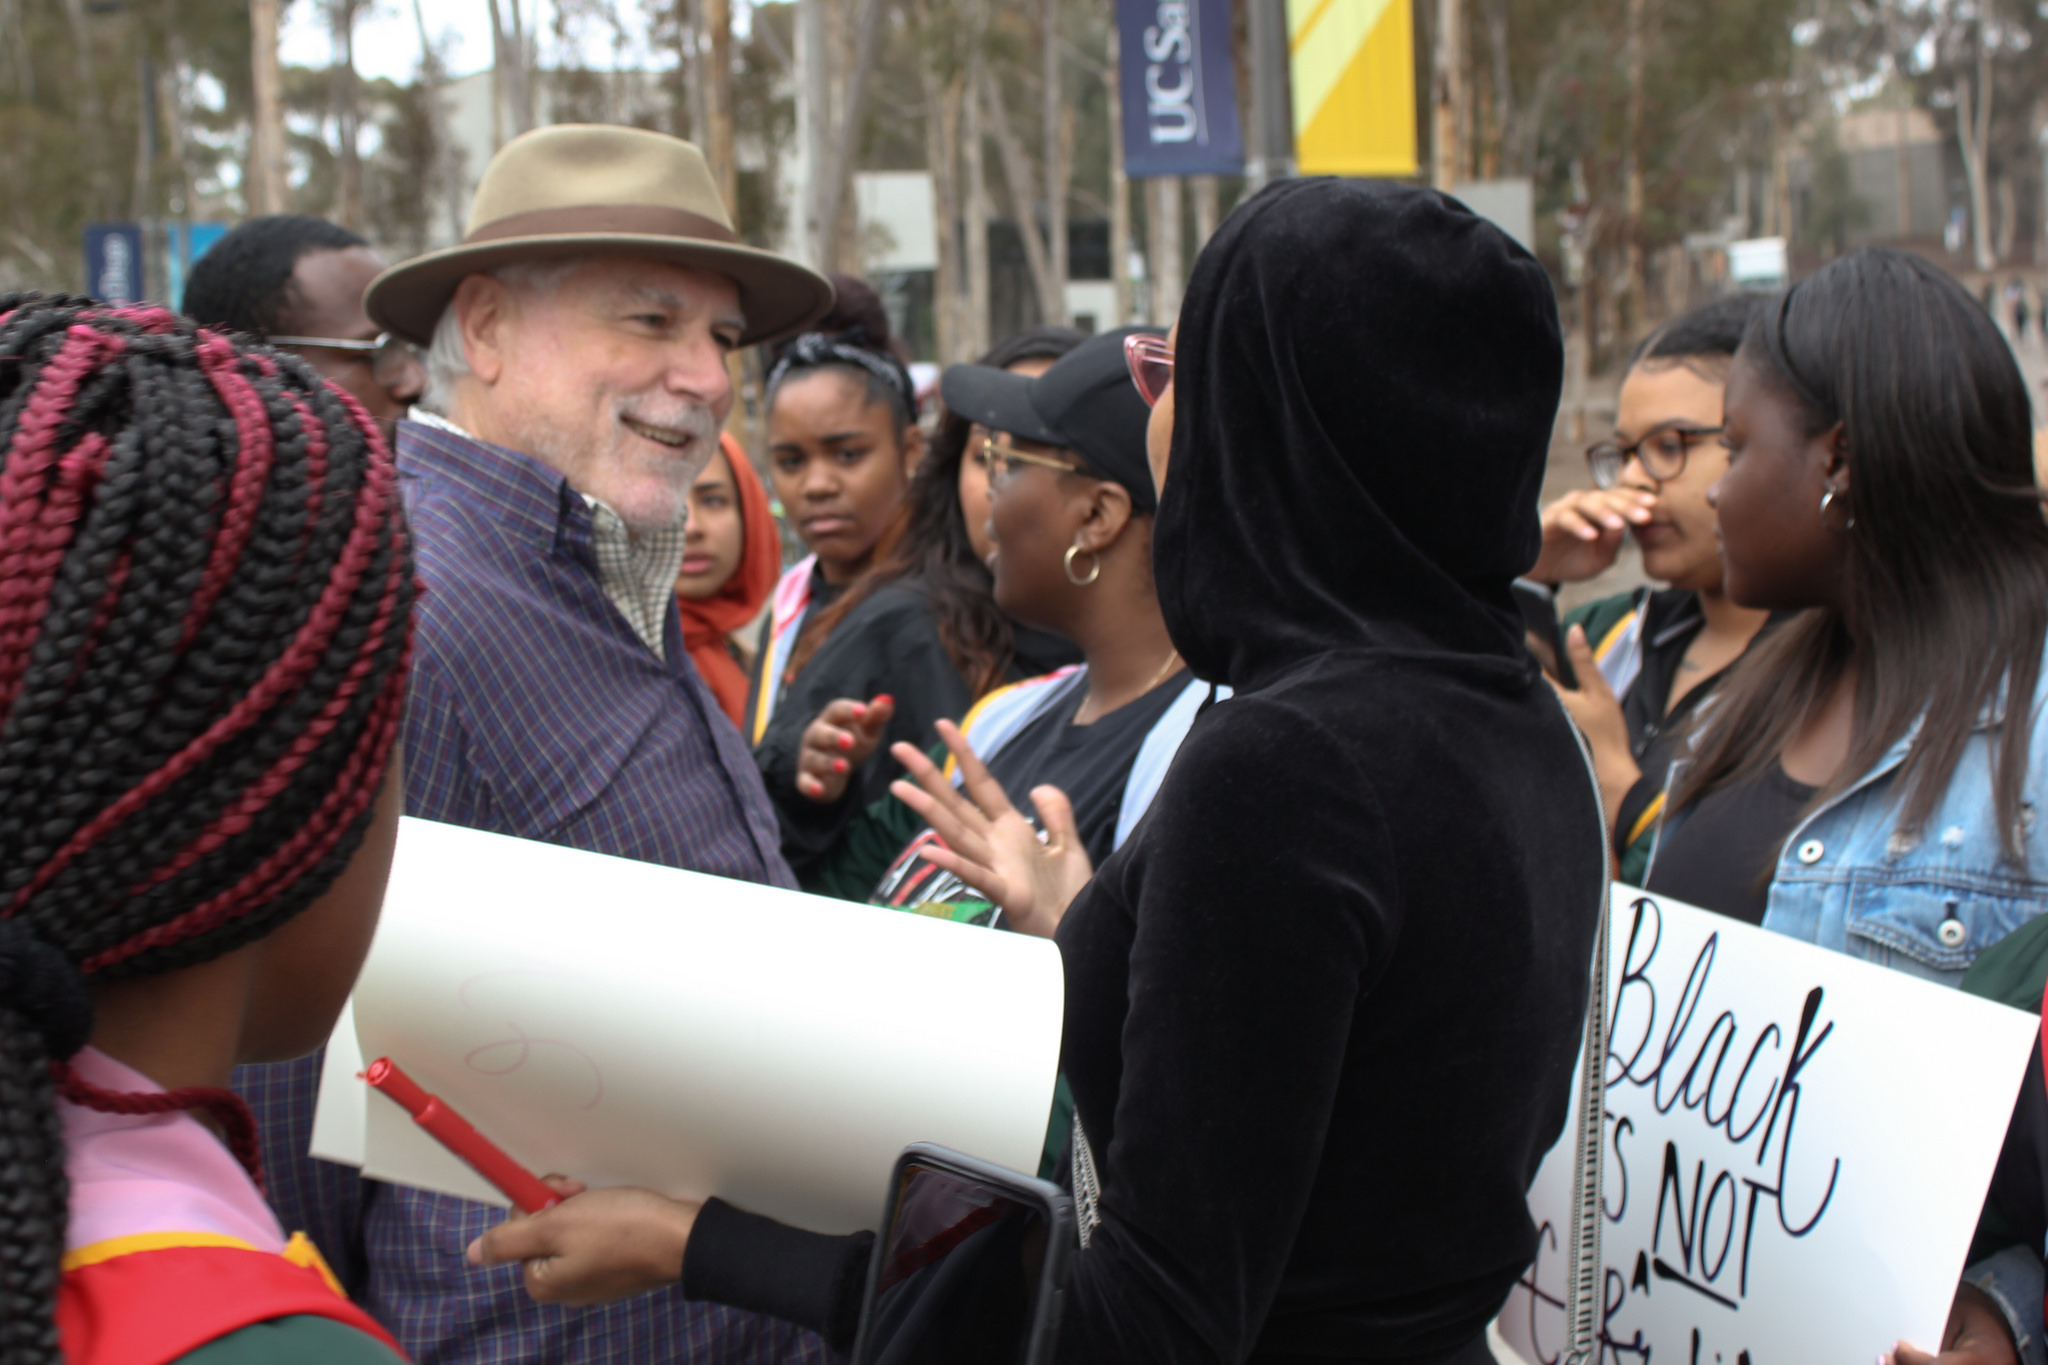 Physics Professor Emeritus Fred Driscoll repeatedly asked protesters about OASIS and refused to step back after he was asked.